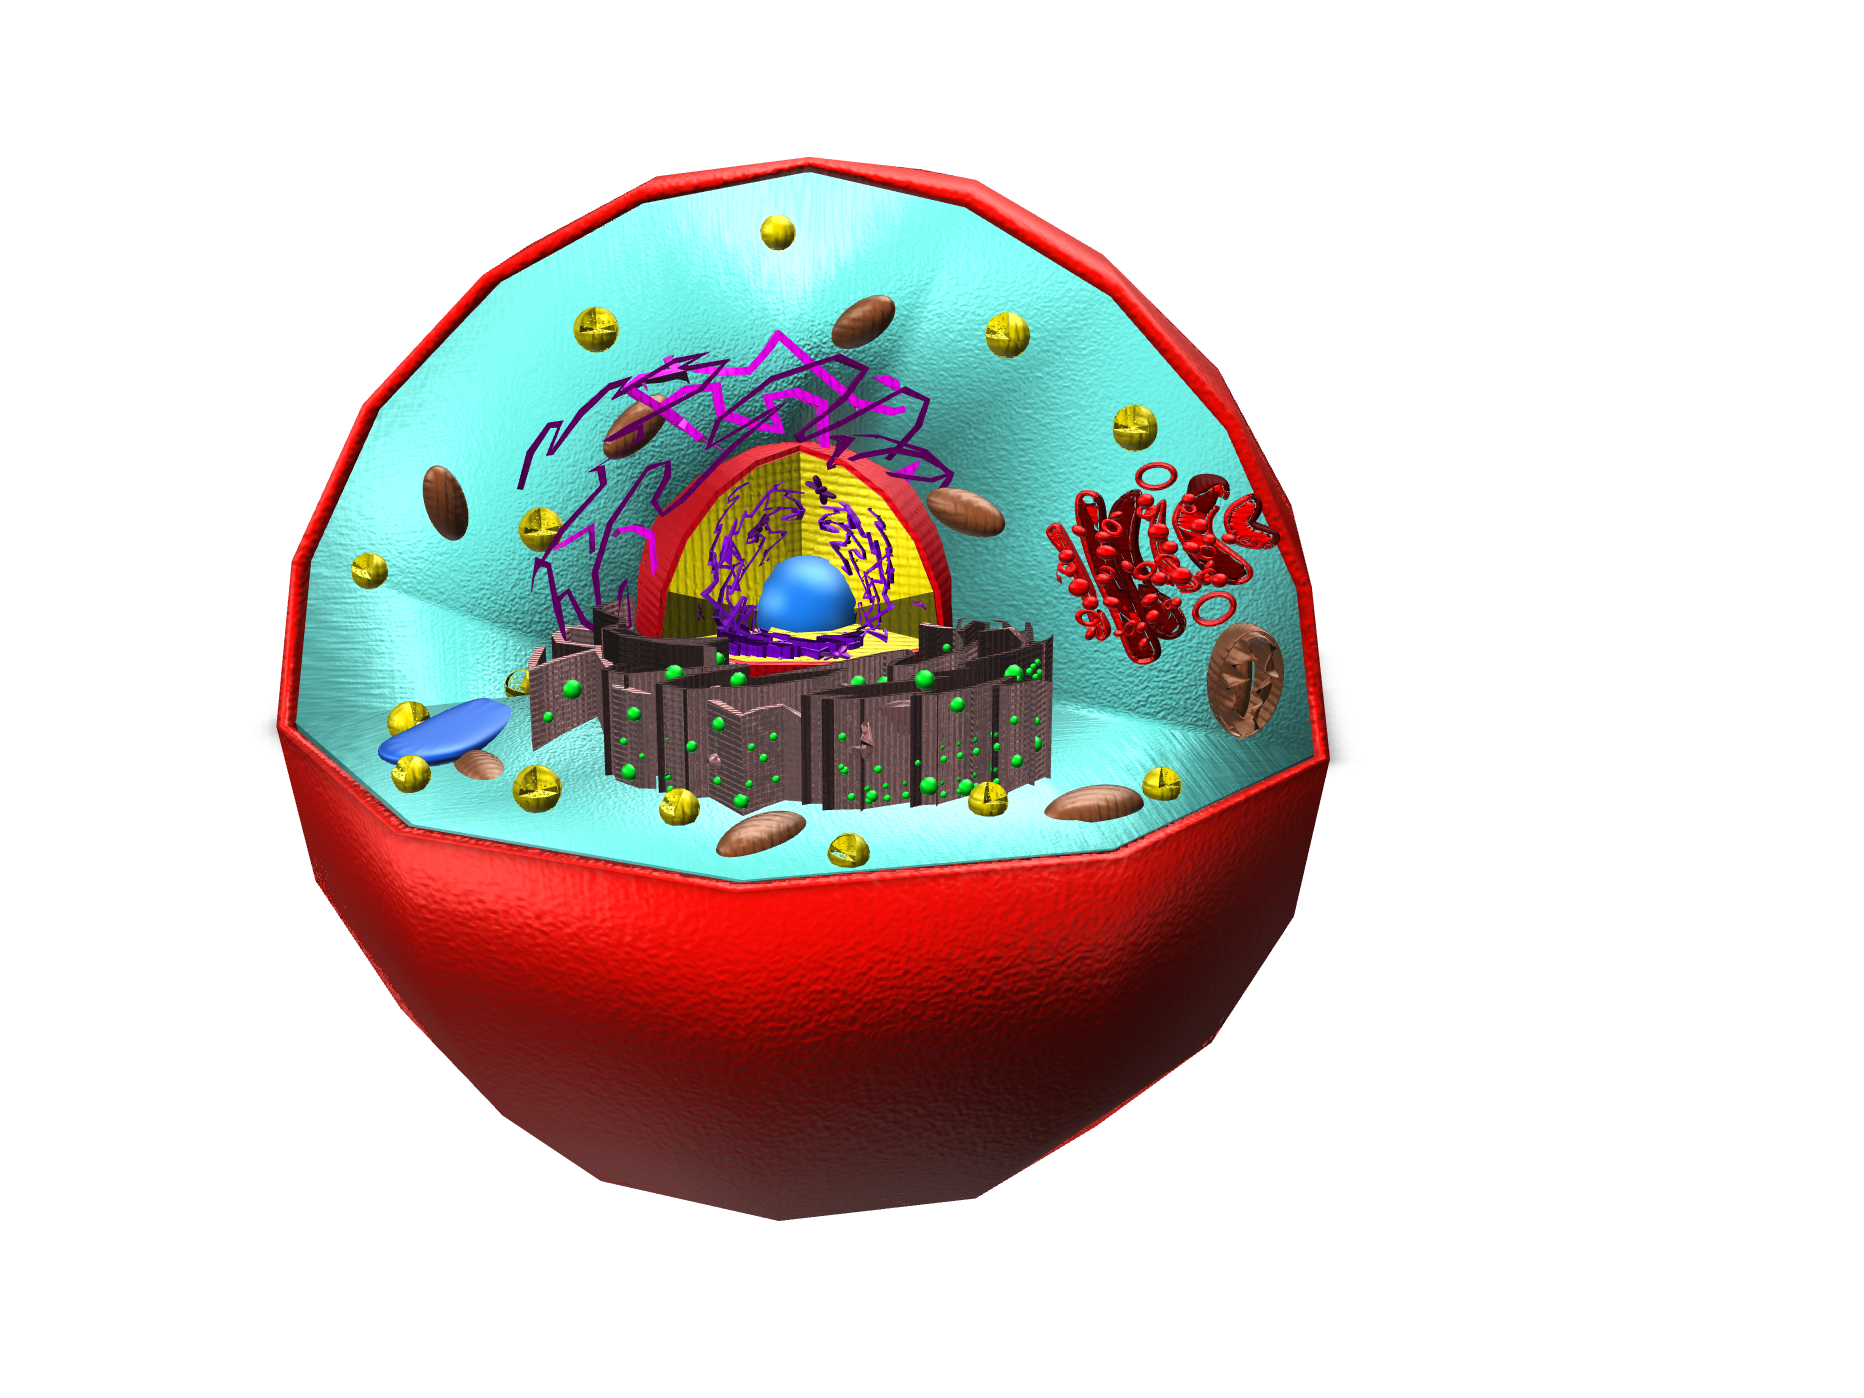 Animal Cell - 3D design by noonehere Nov 5, 2017